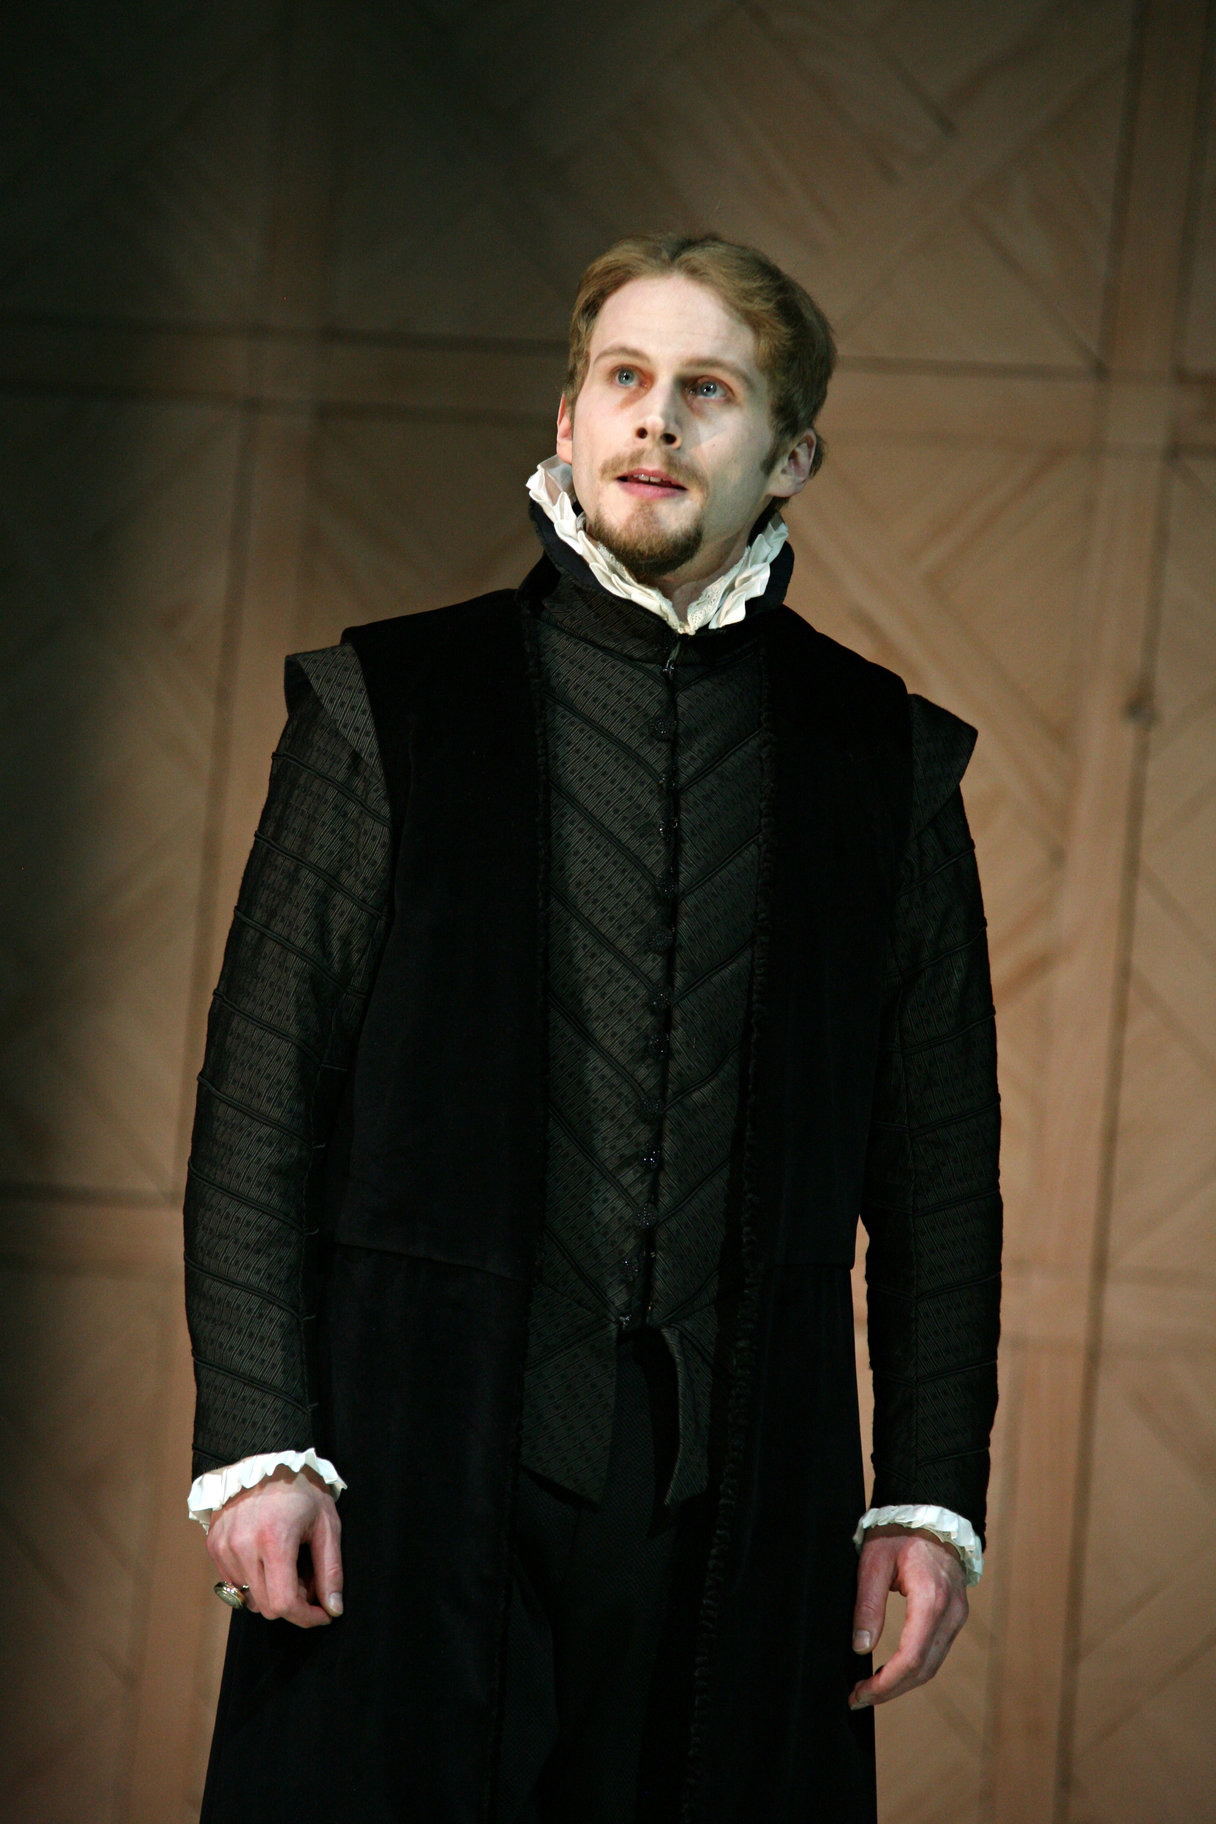 Oliver in a black suit and tunic.